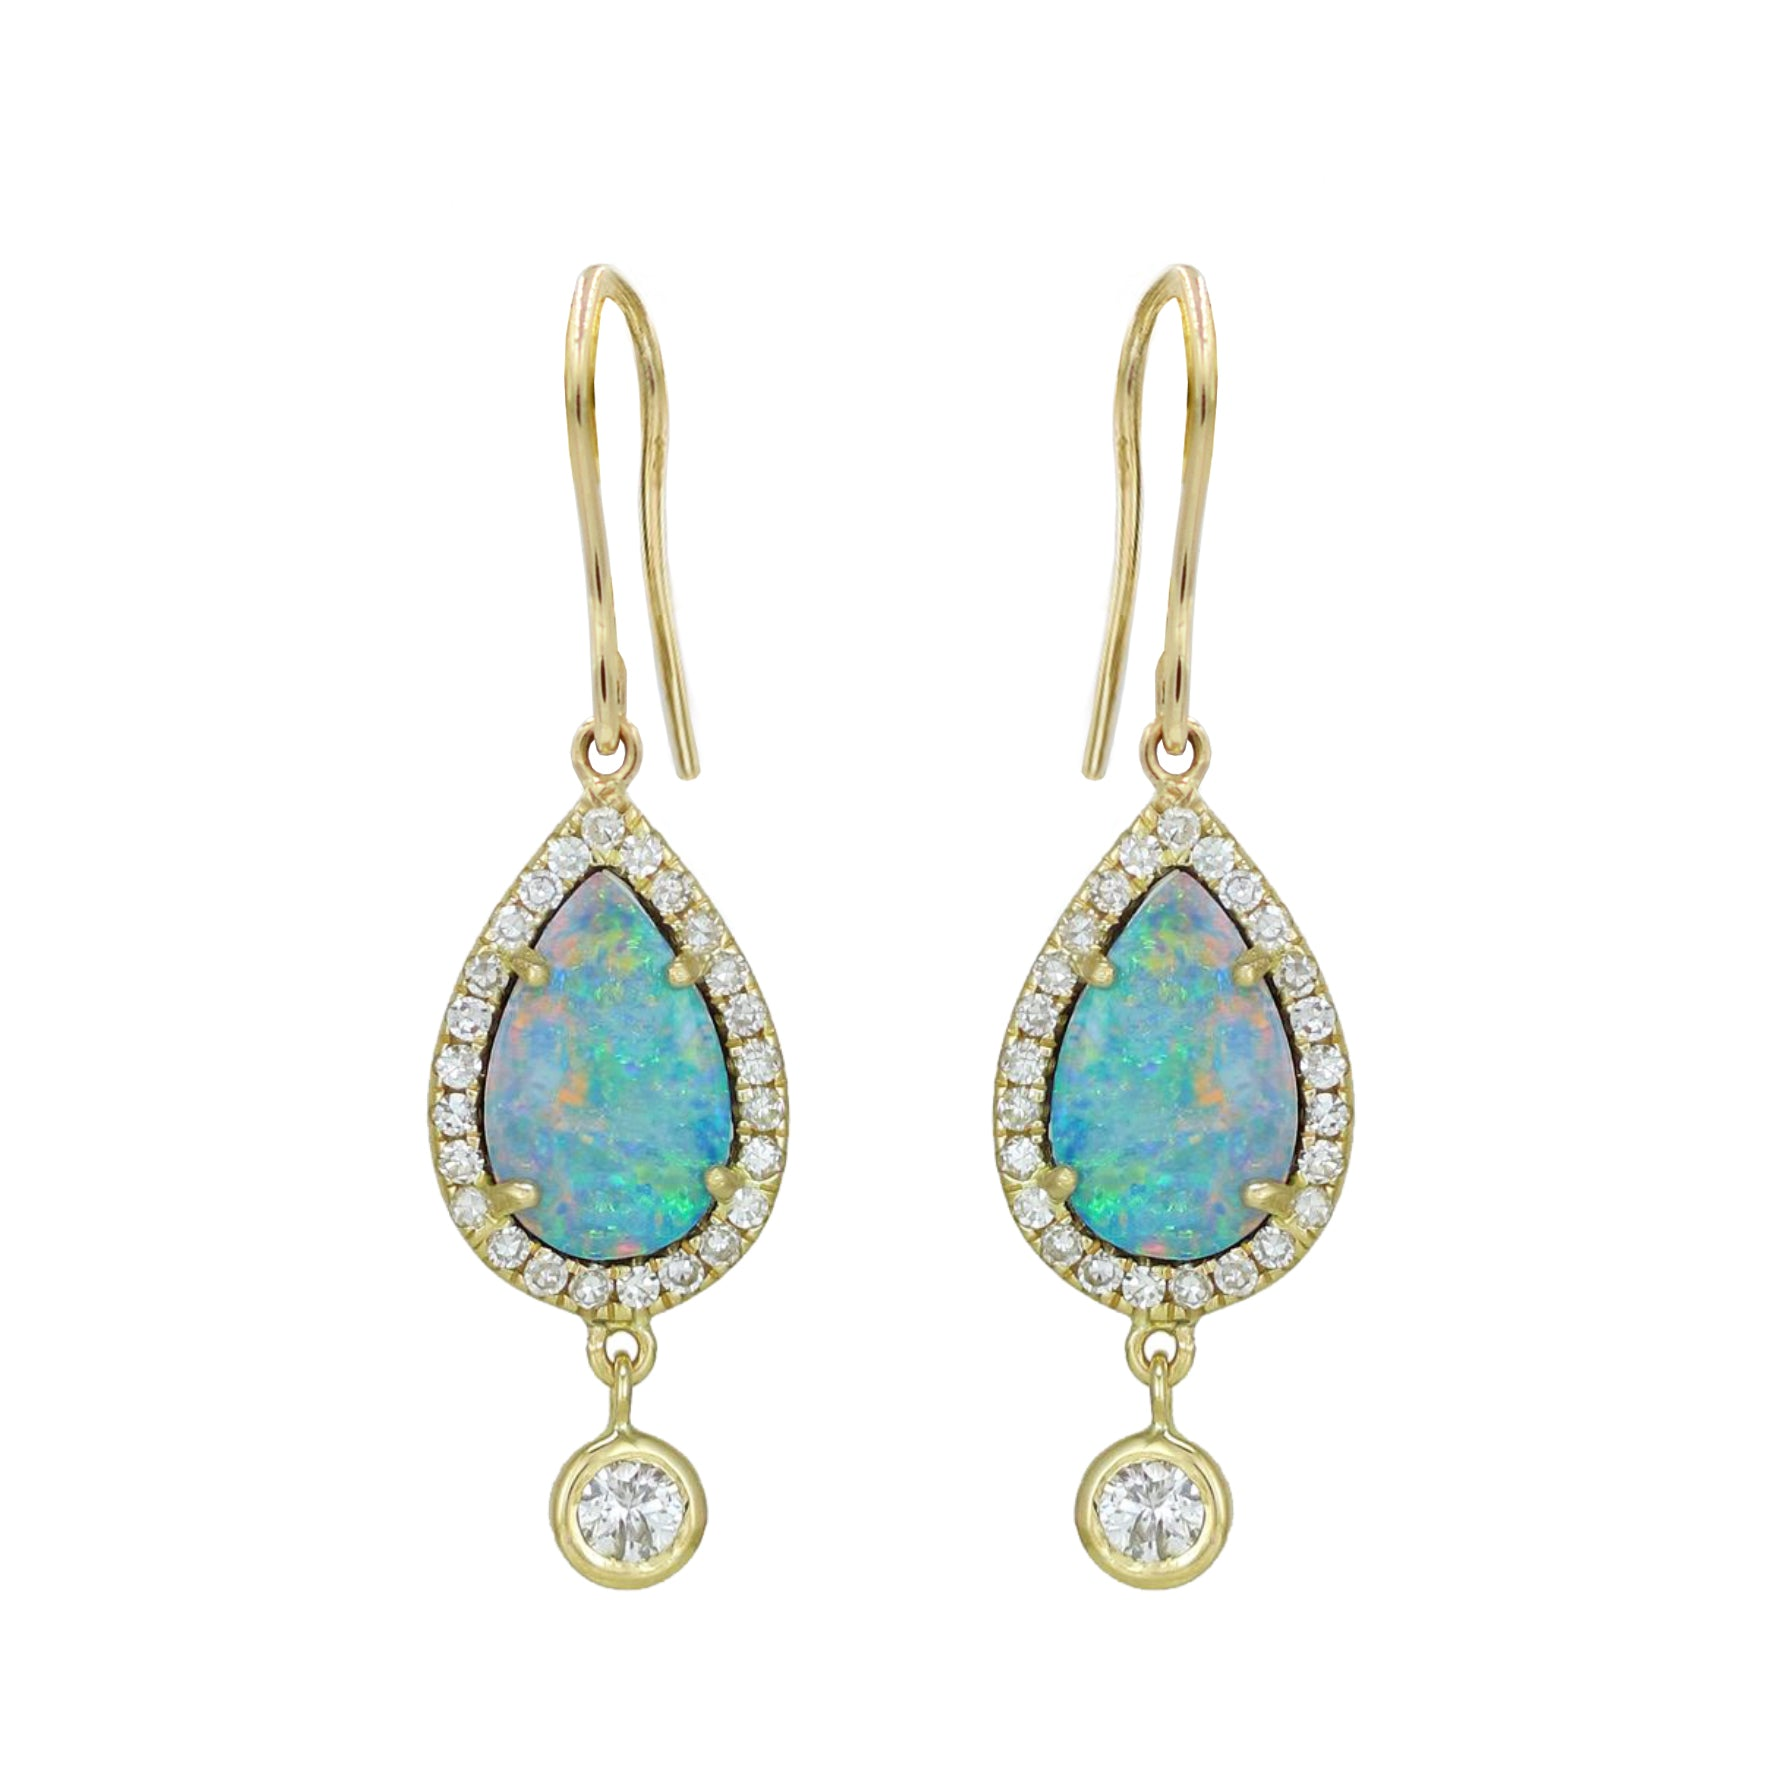 Opal Teardrop and Diamond Dangle Earrings in 14k Gold